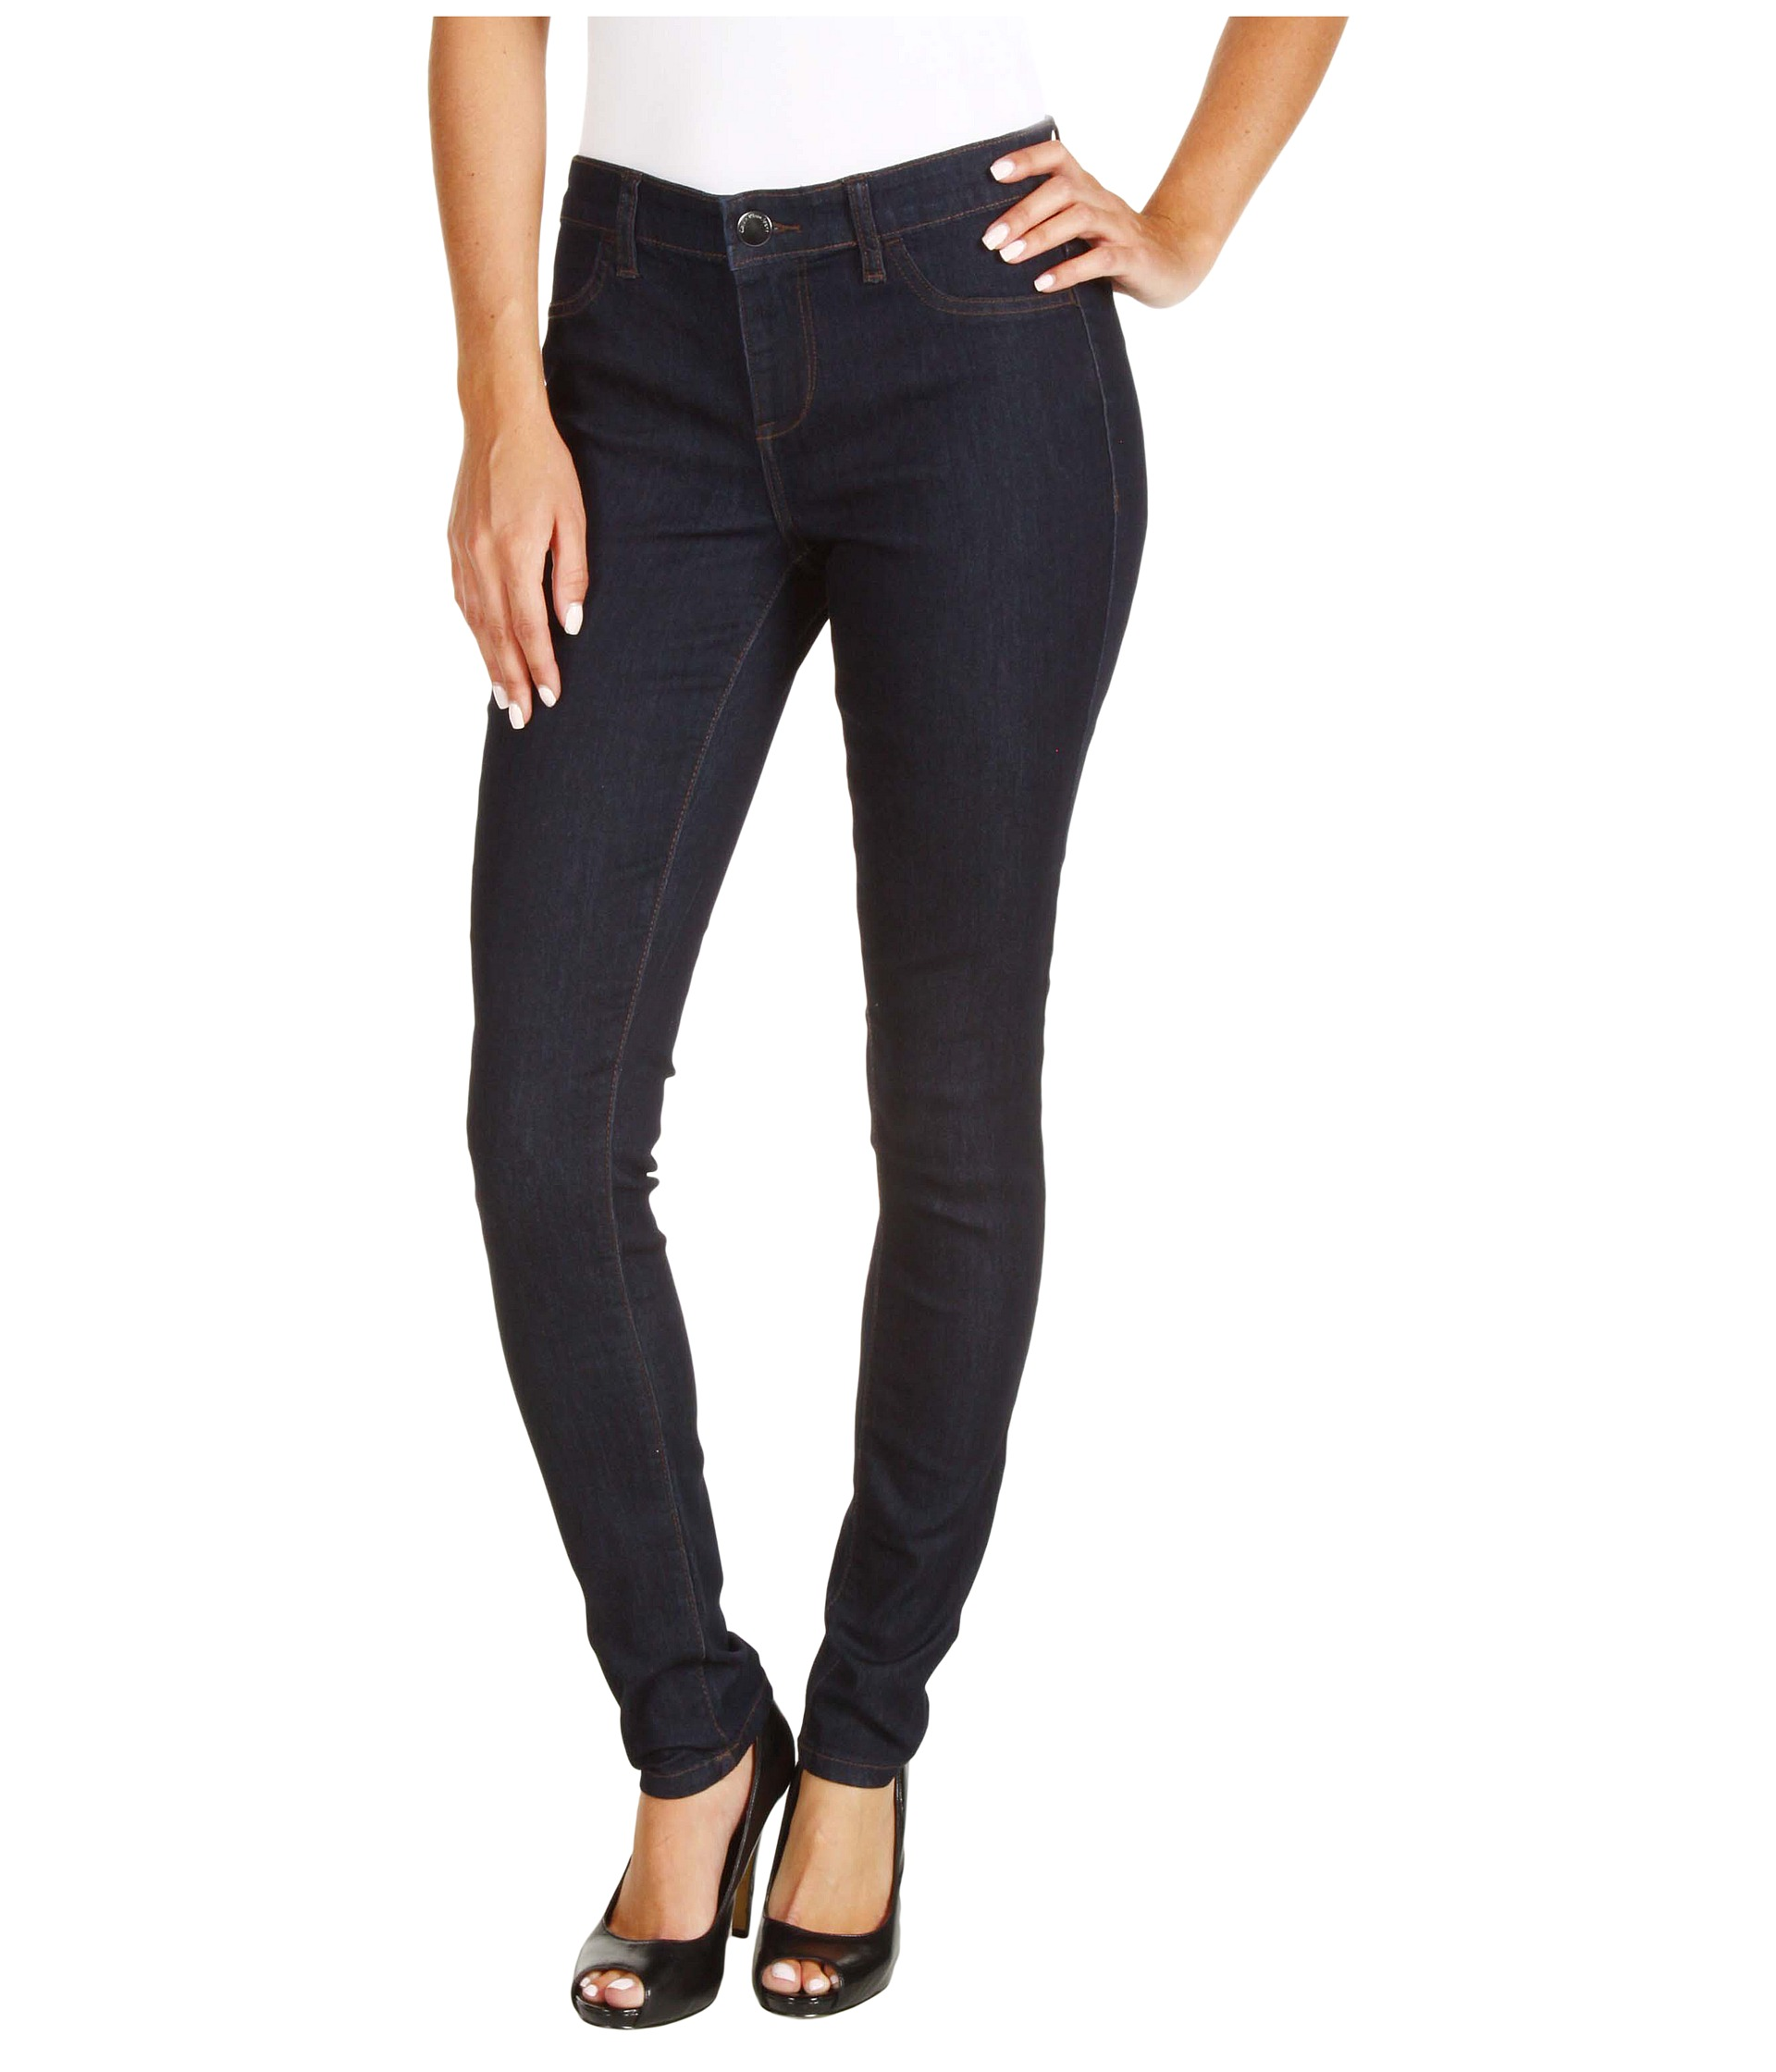 calvin klein jeans powerstretch denim legging in rinse shipped free at zappos. Black Bedroom Furniture Sets. Home Design Ideas